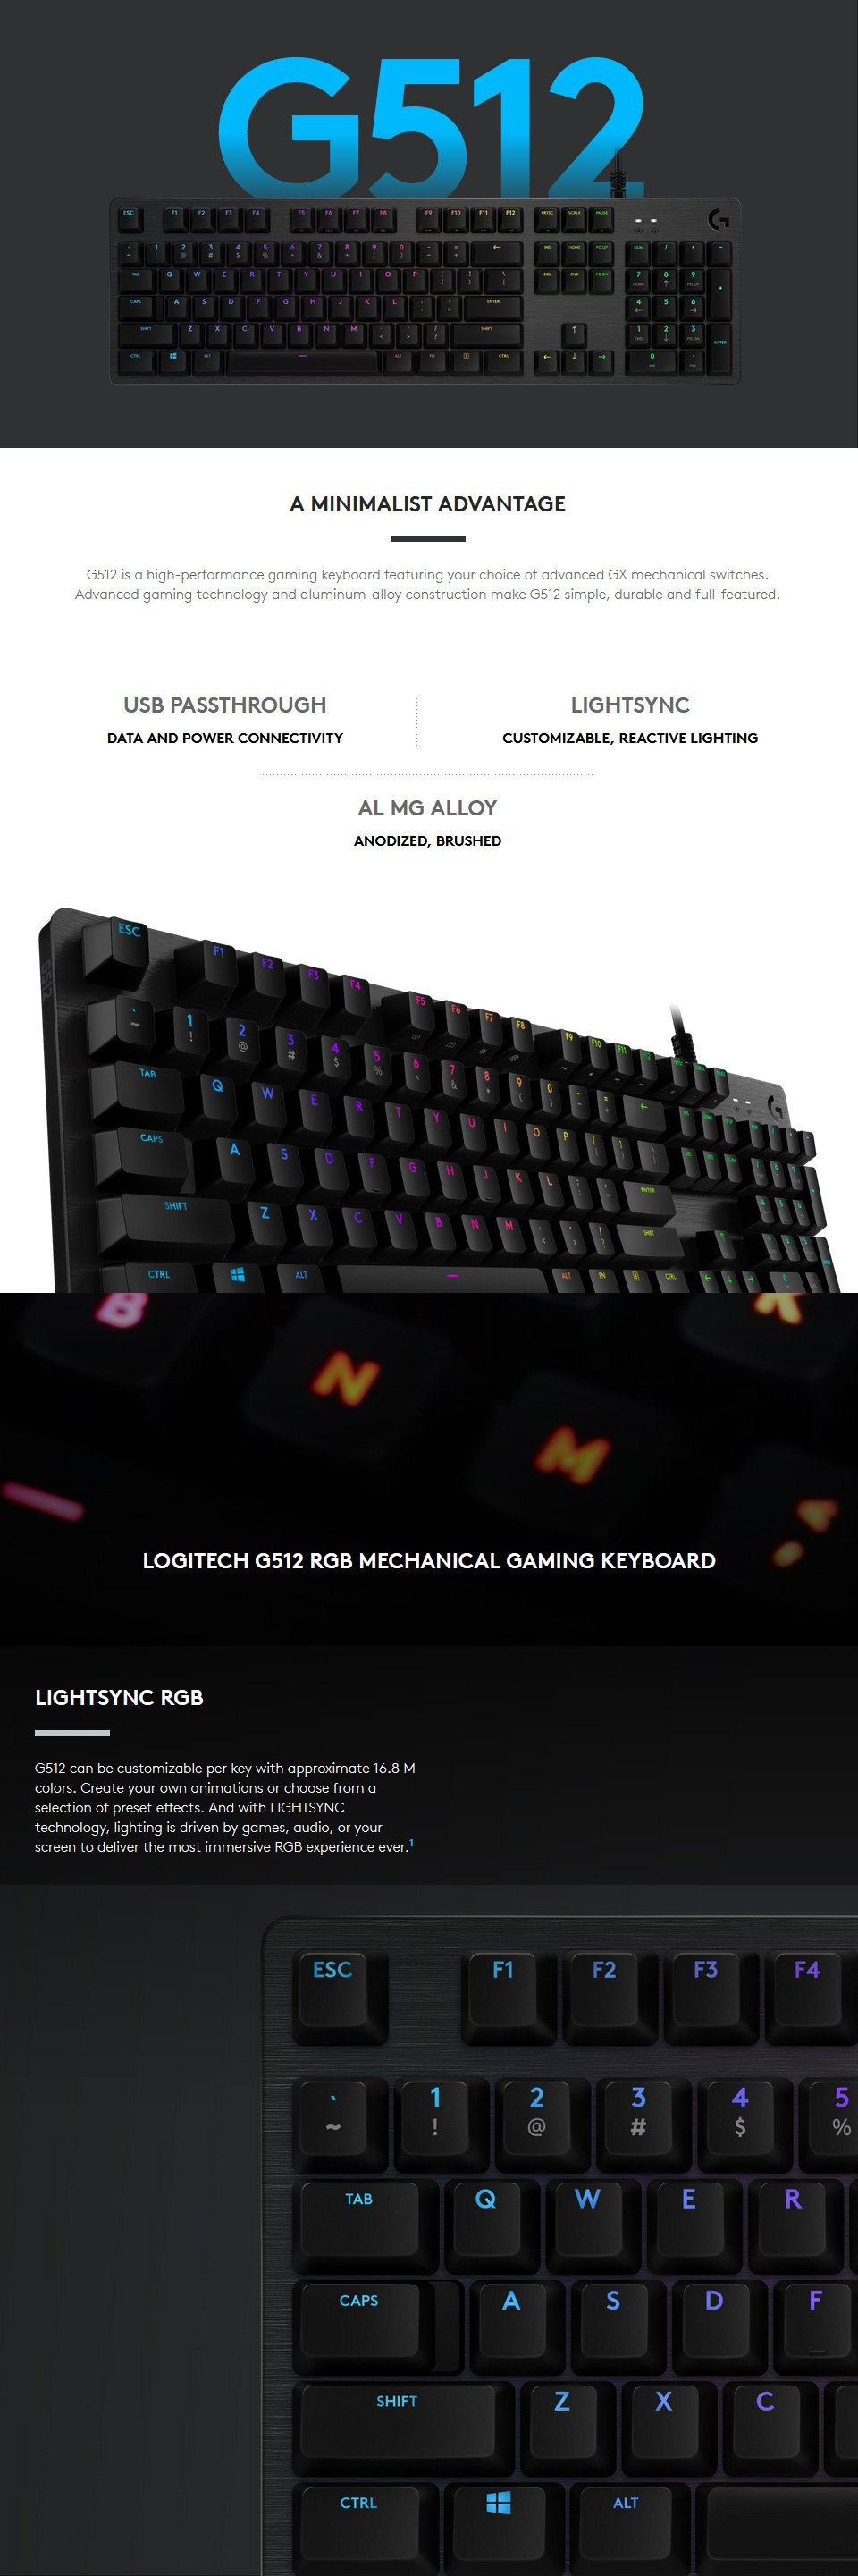 Logitech G512 Carbon RGB Mechanical Keyboard GX Red features